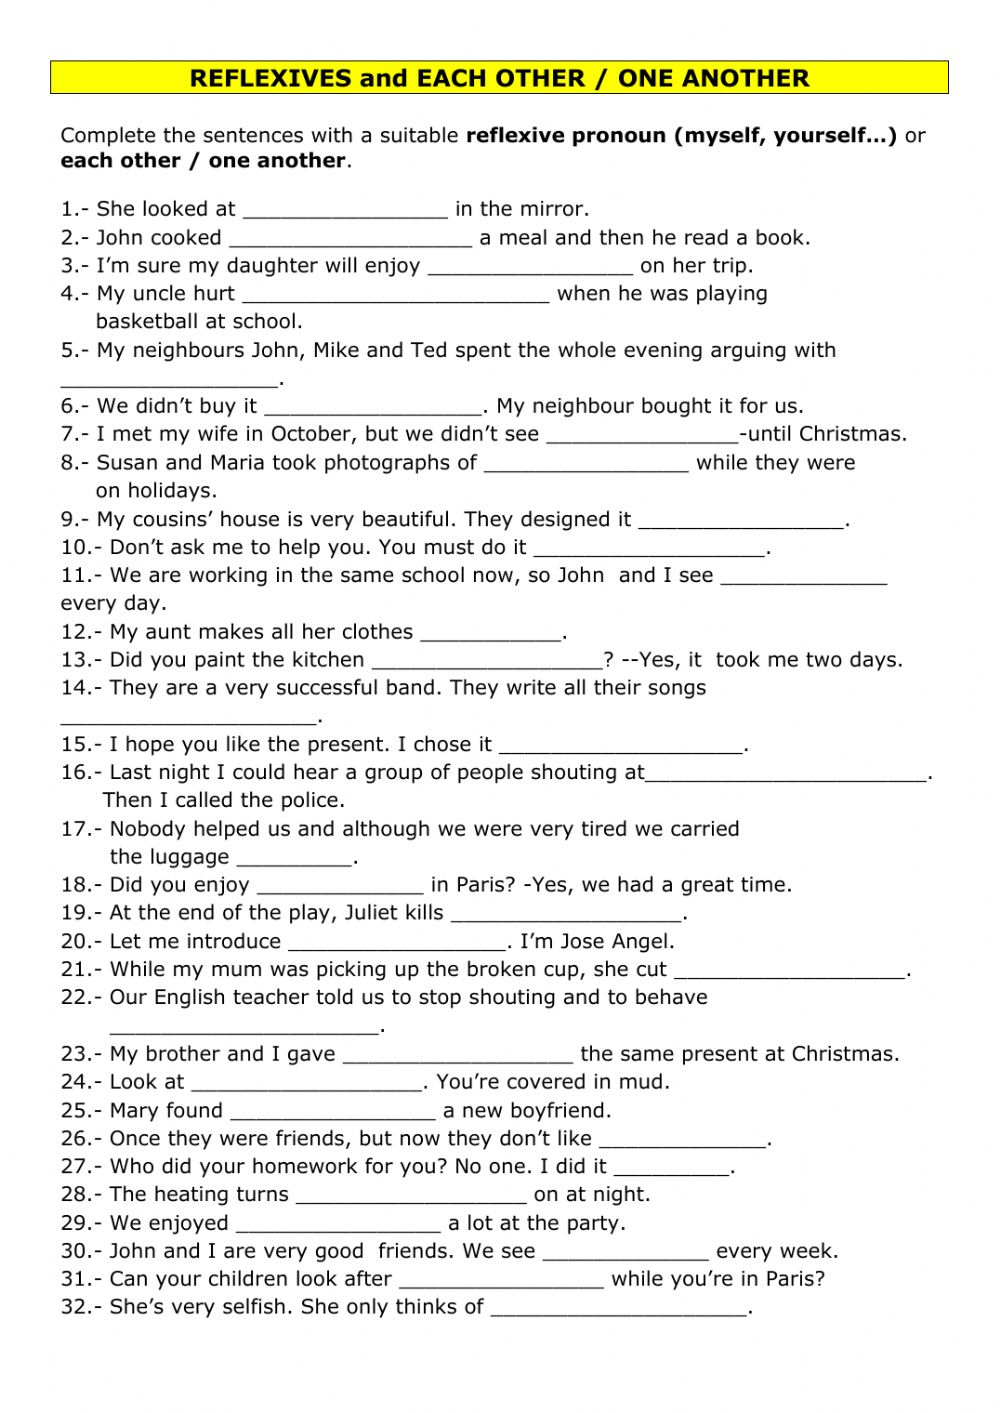 medium resolution of Reflexive pronouns or each other-one another worksheet